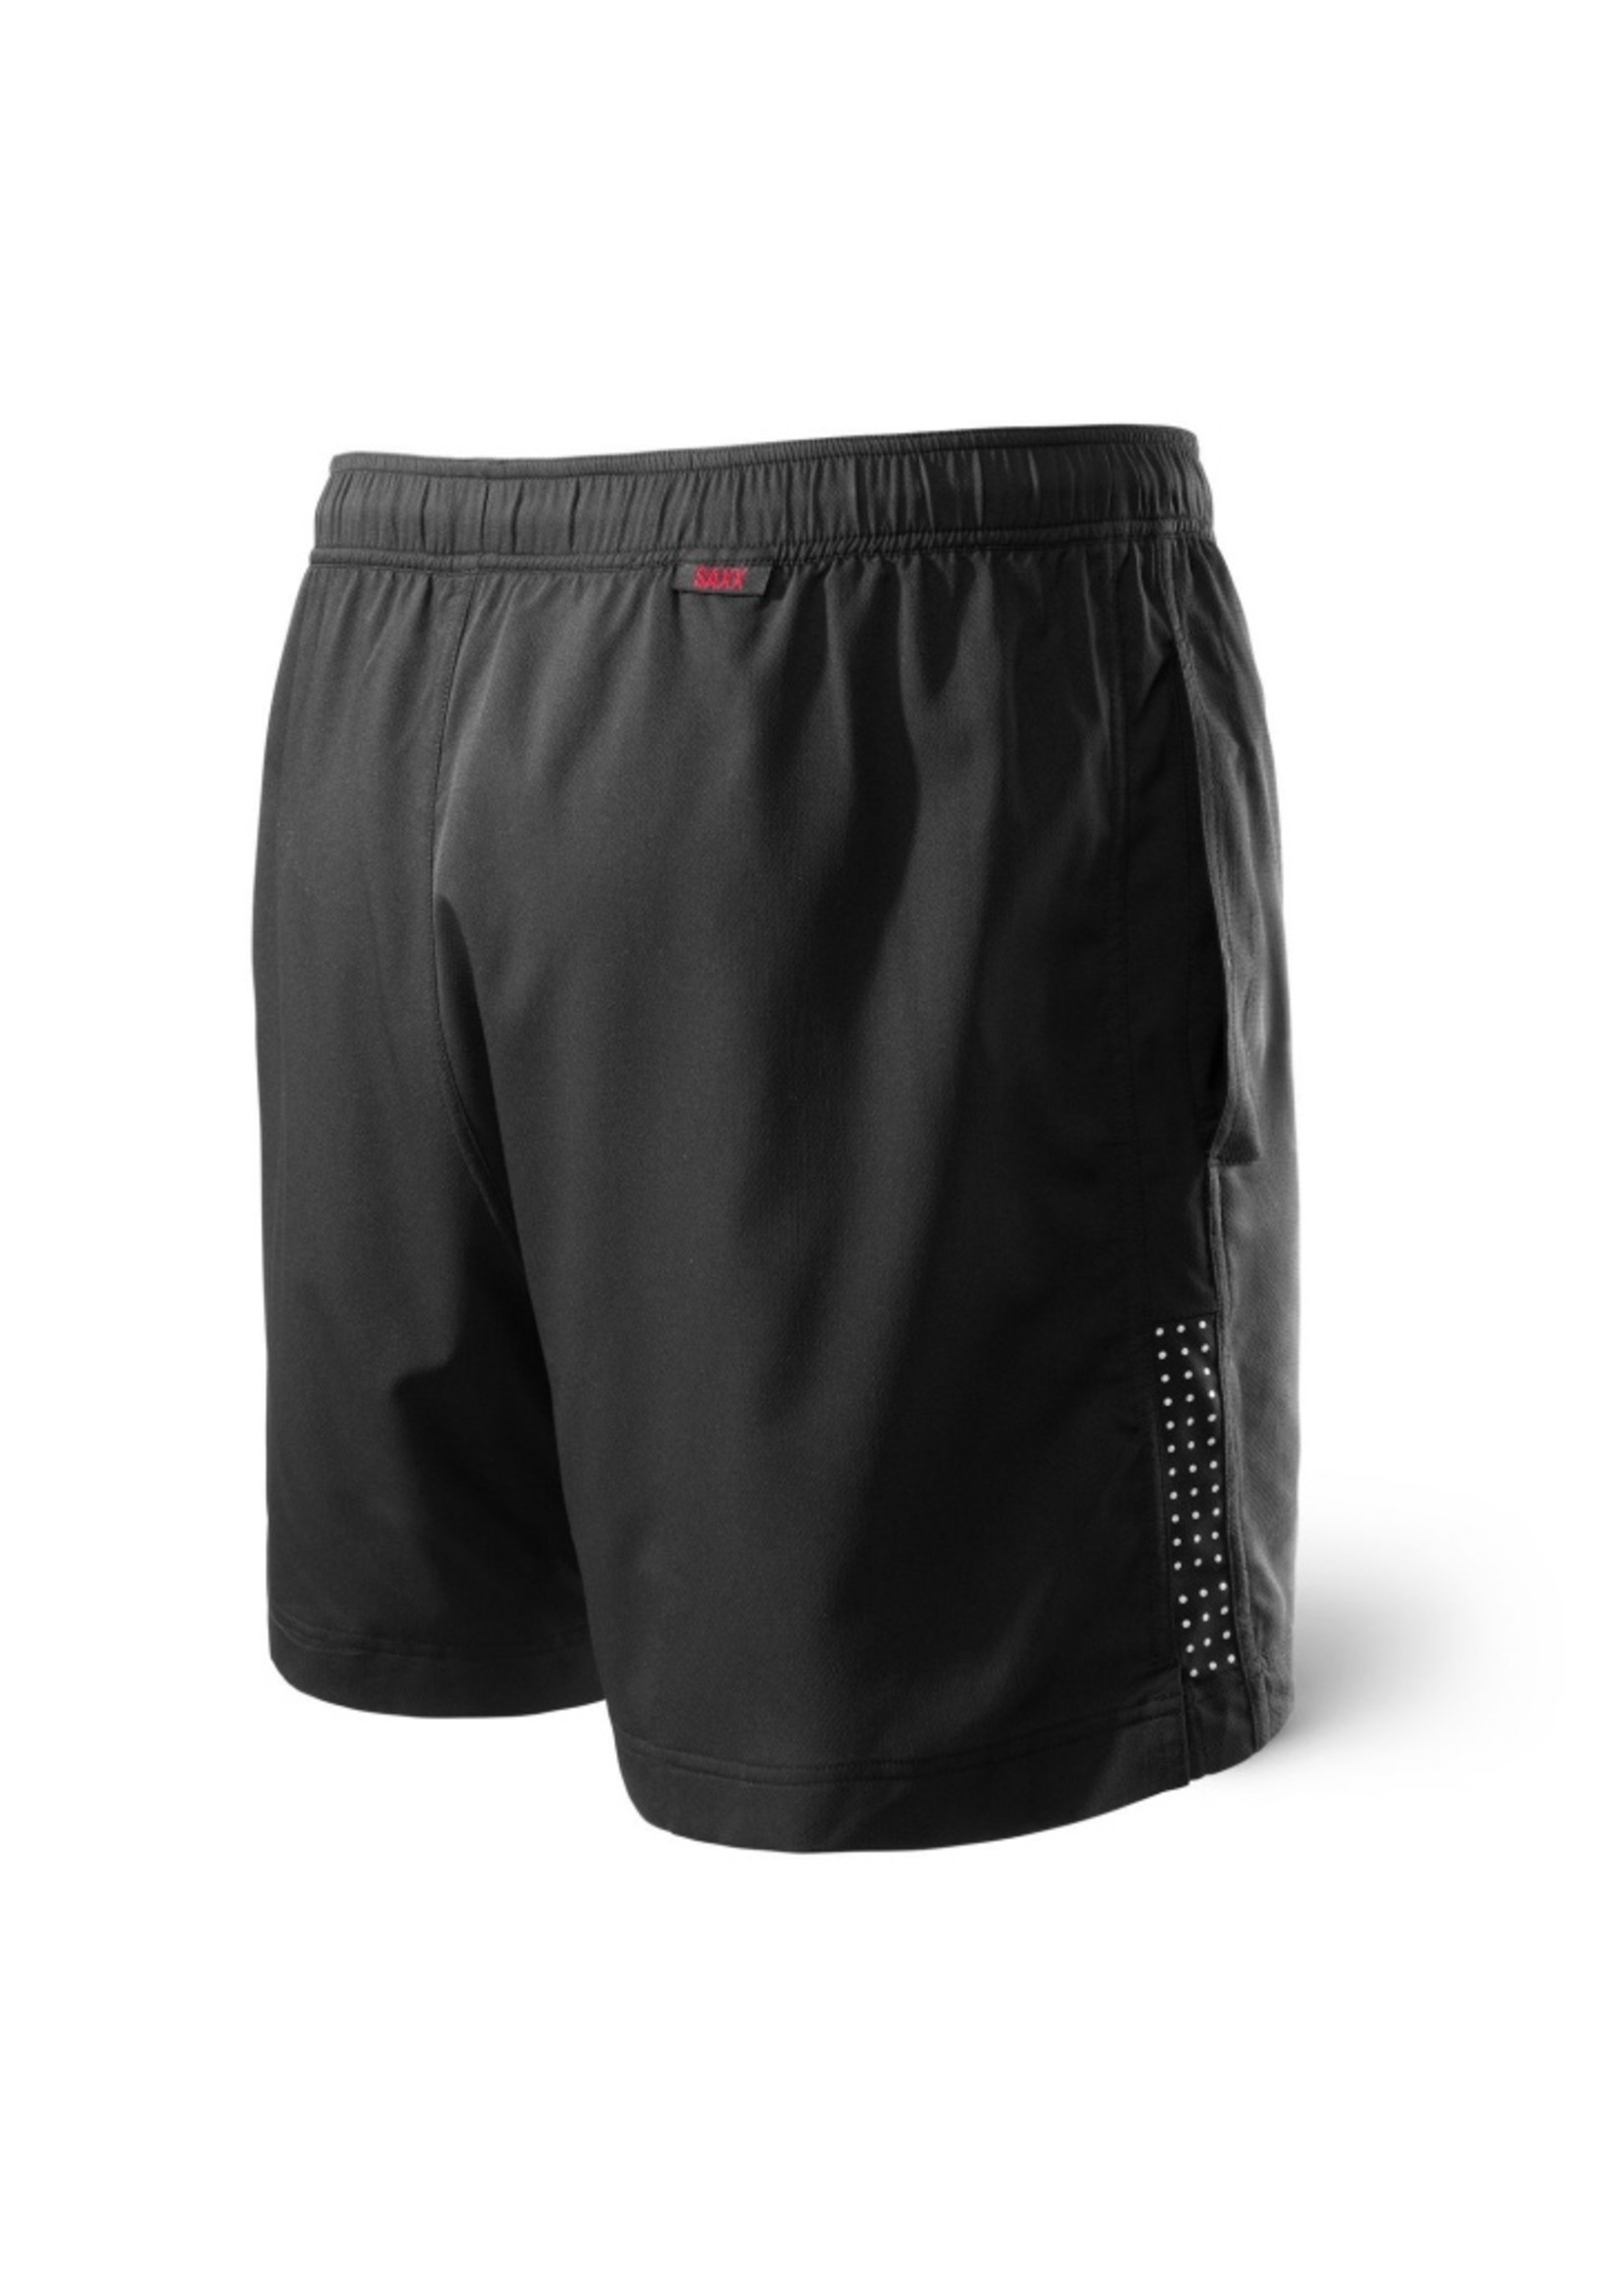 Saxx Kinetic 2N1 Run Shorts